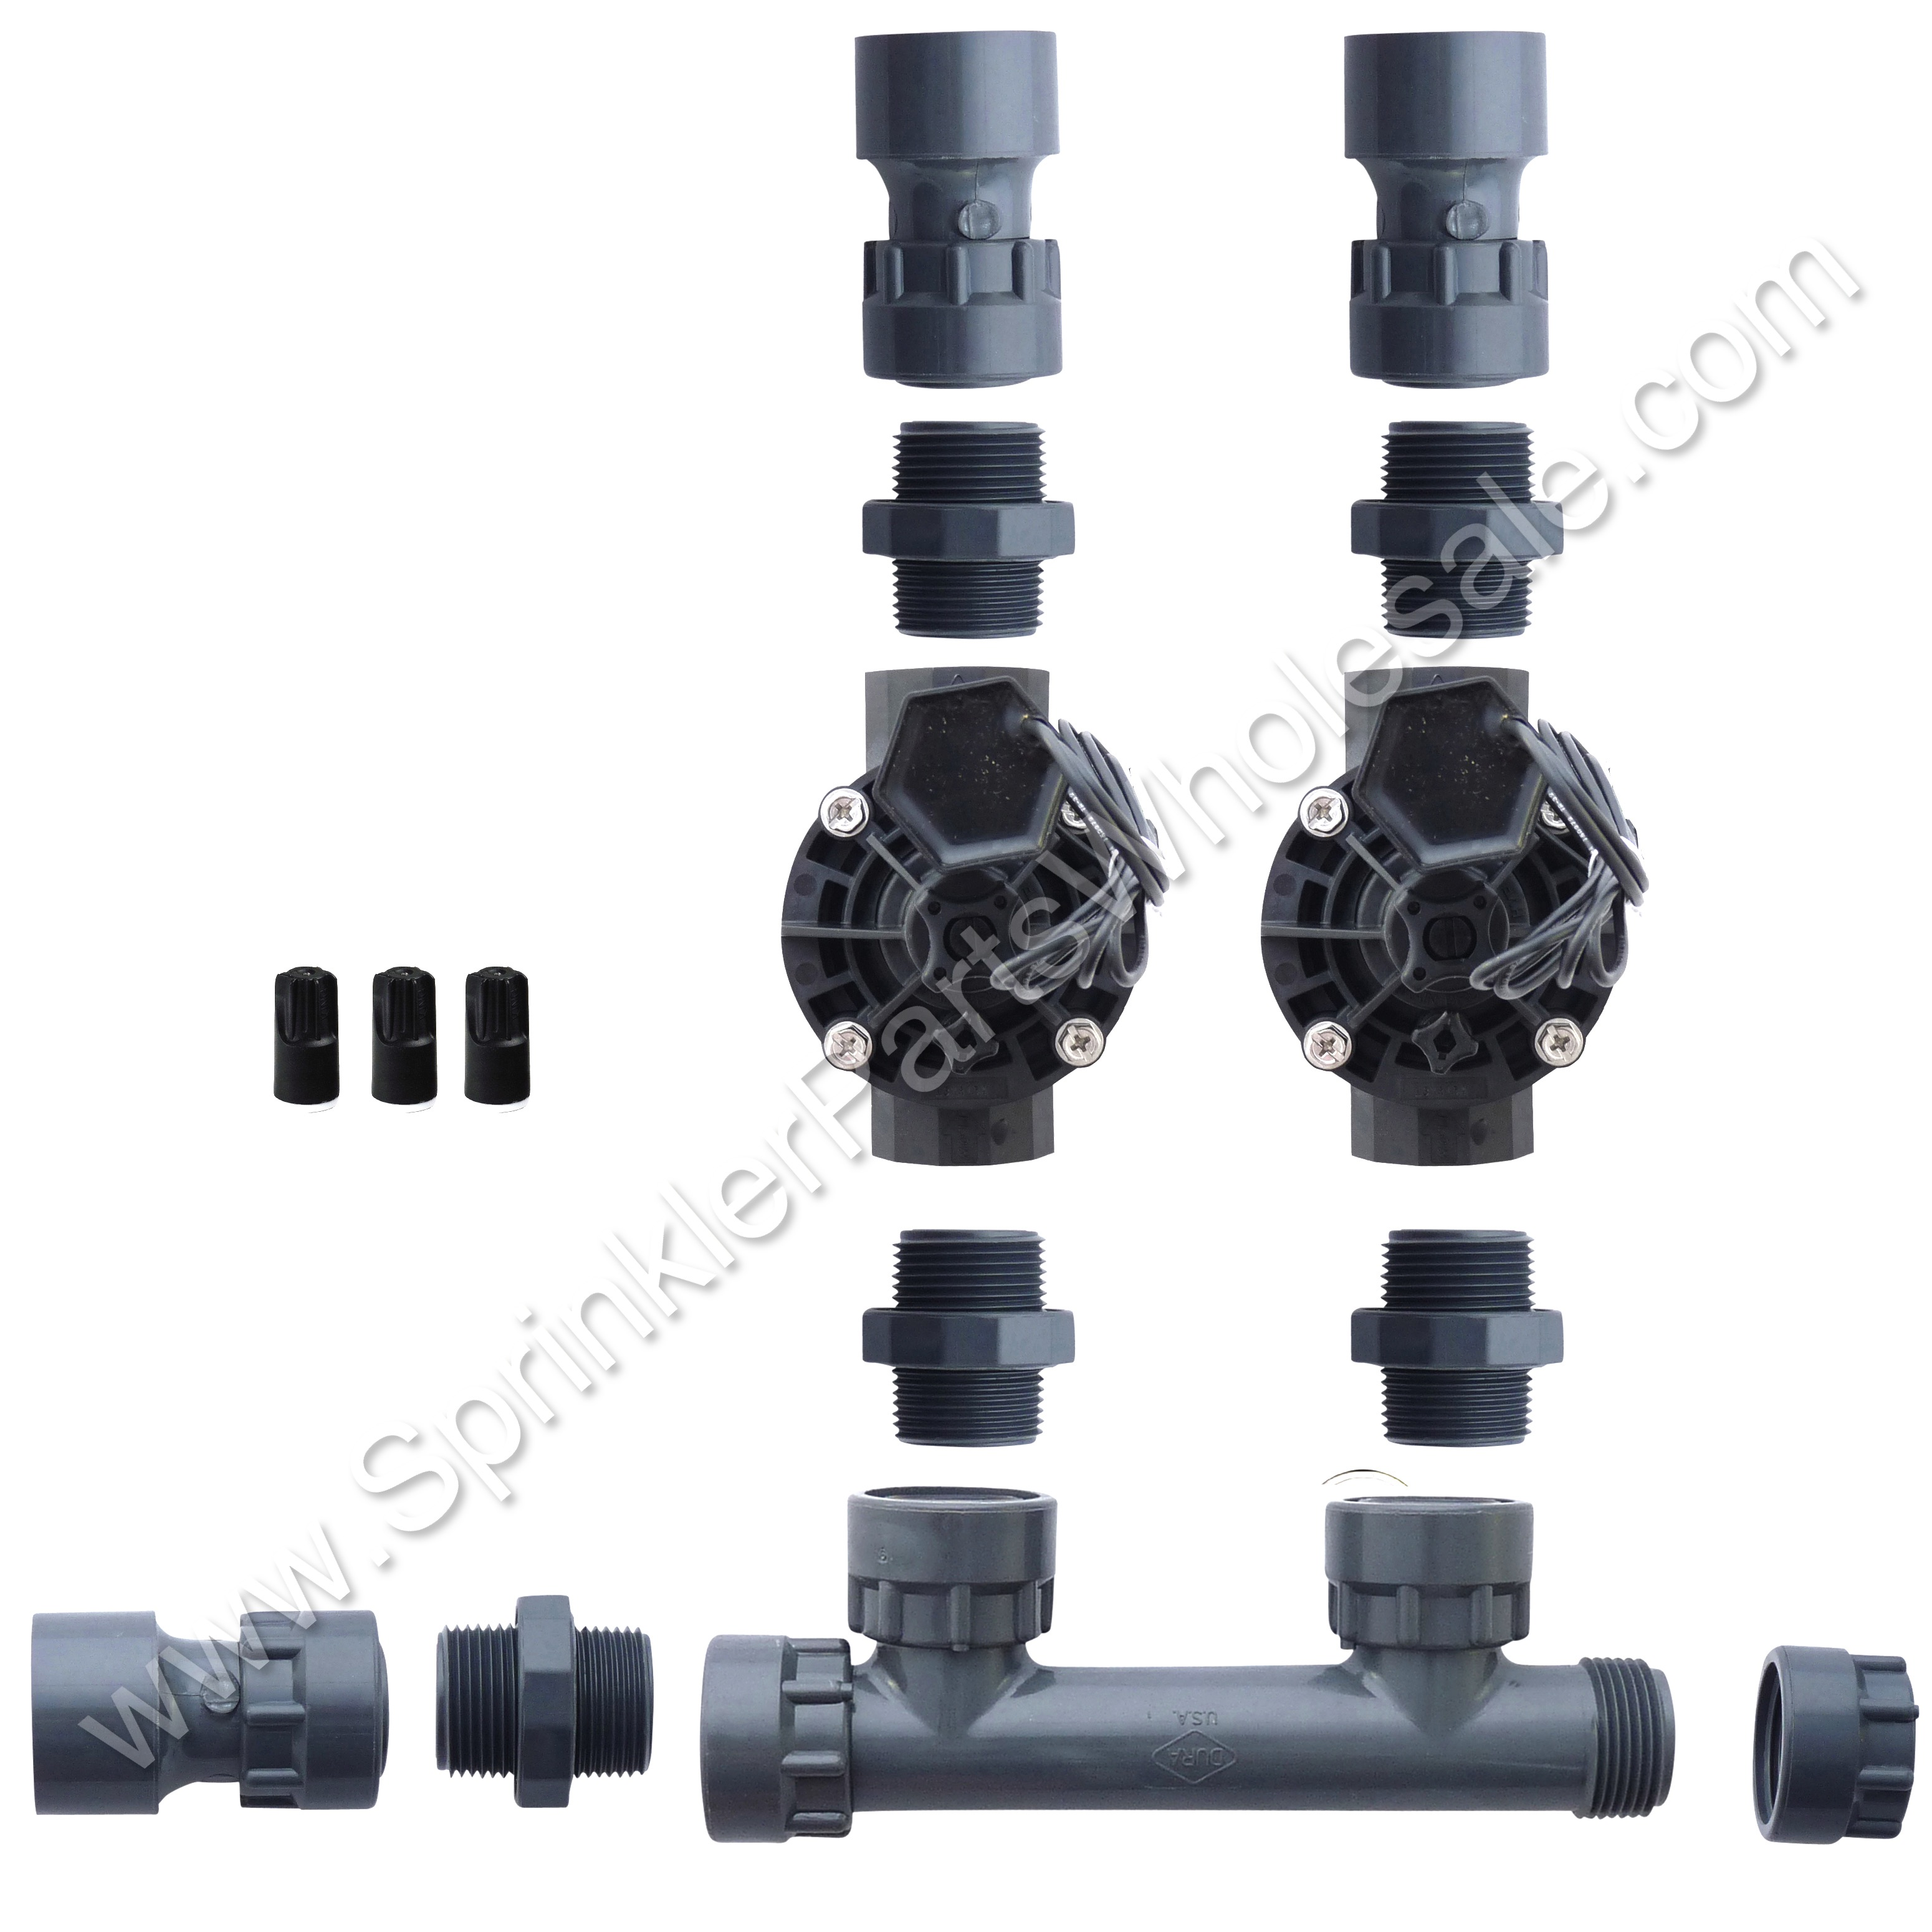 Dura Hvf S Wm also Drip Irrigation furthermore Oem Ford Motorcraft Gp Alternator Pulley L Z Ab Escape Explorer Focus additionally  further Valvebox Install. on rain bird sprinkler valve manifold